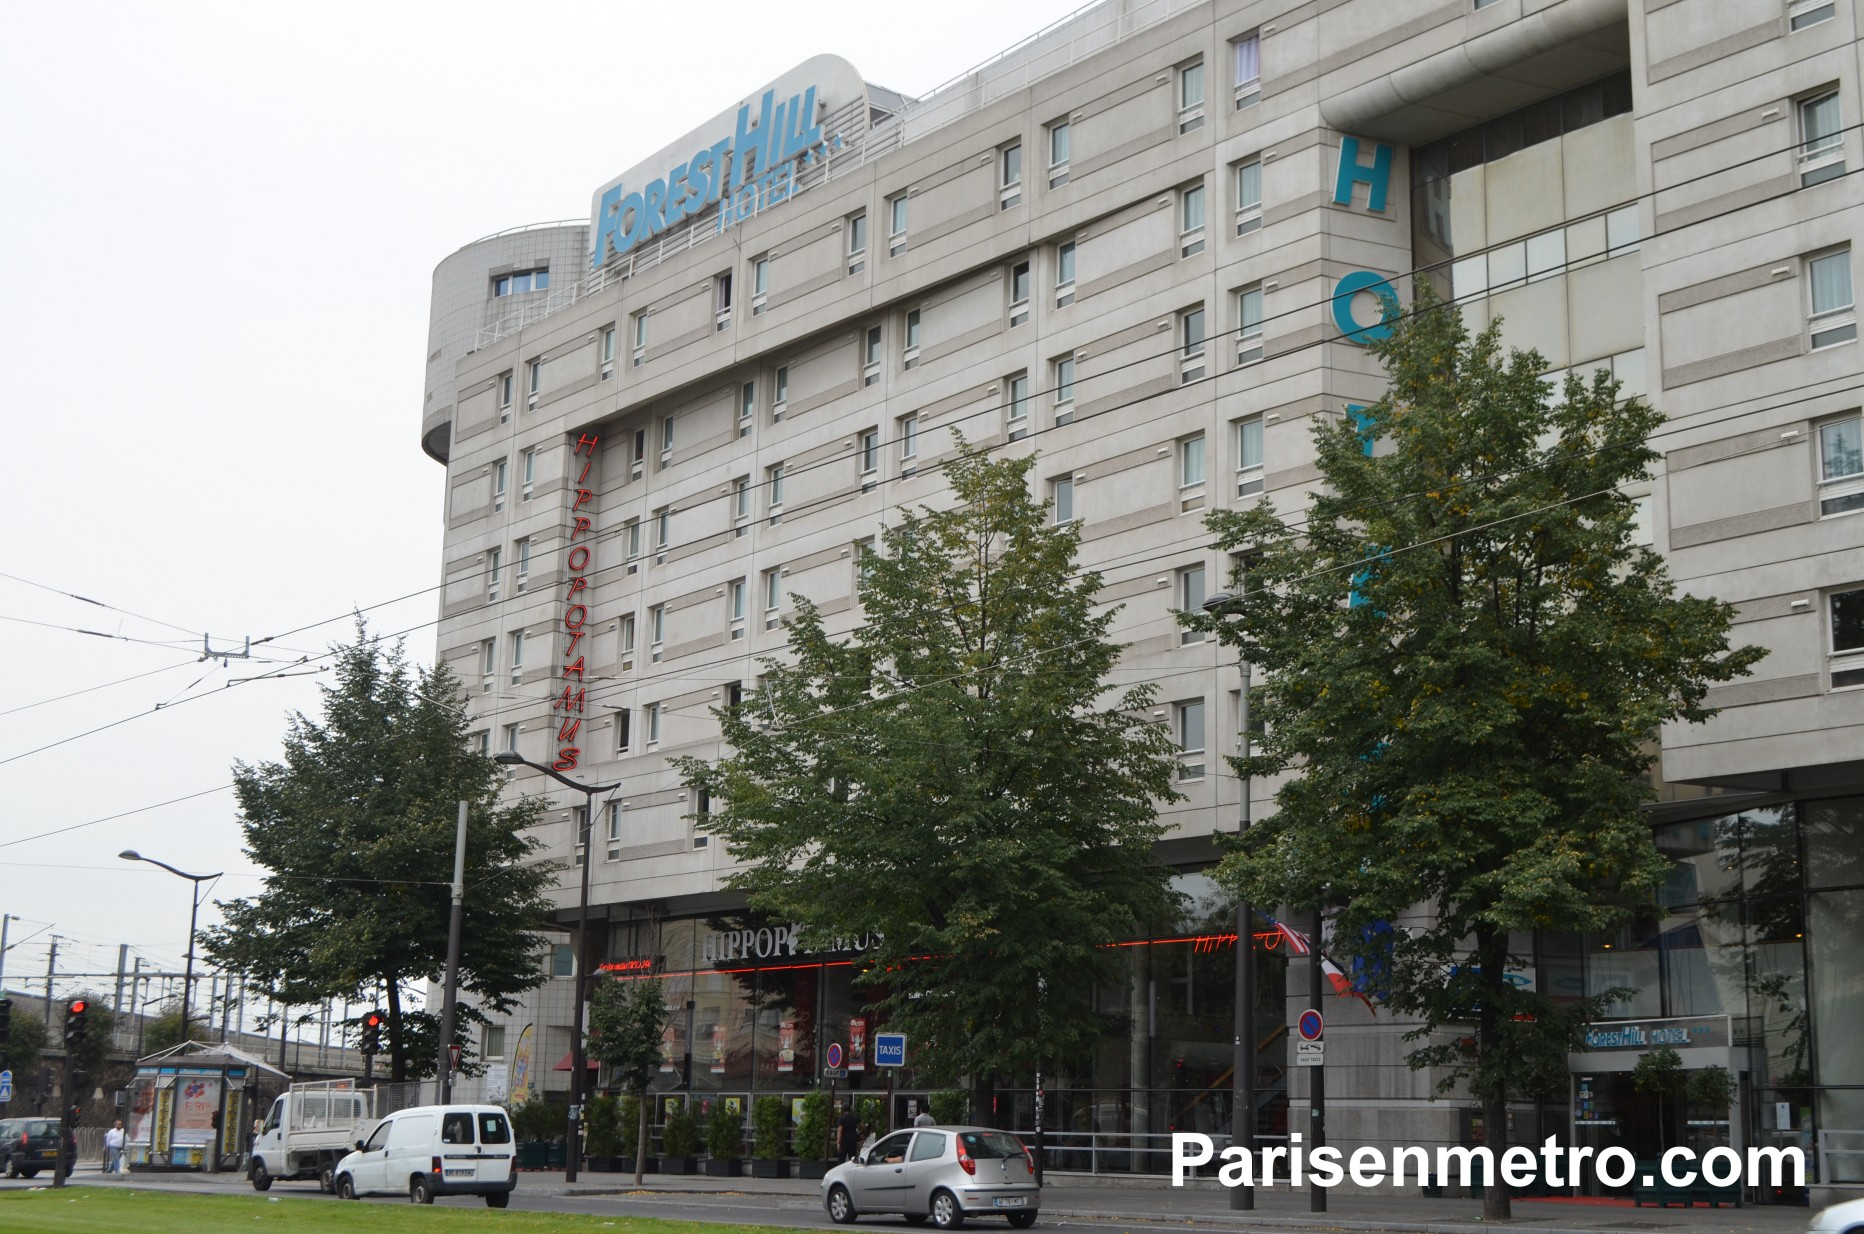 H tel forest hill paris la villette paris en m tro - Hotel forest hill porte de la villette ...